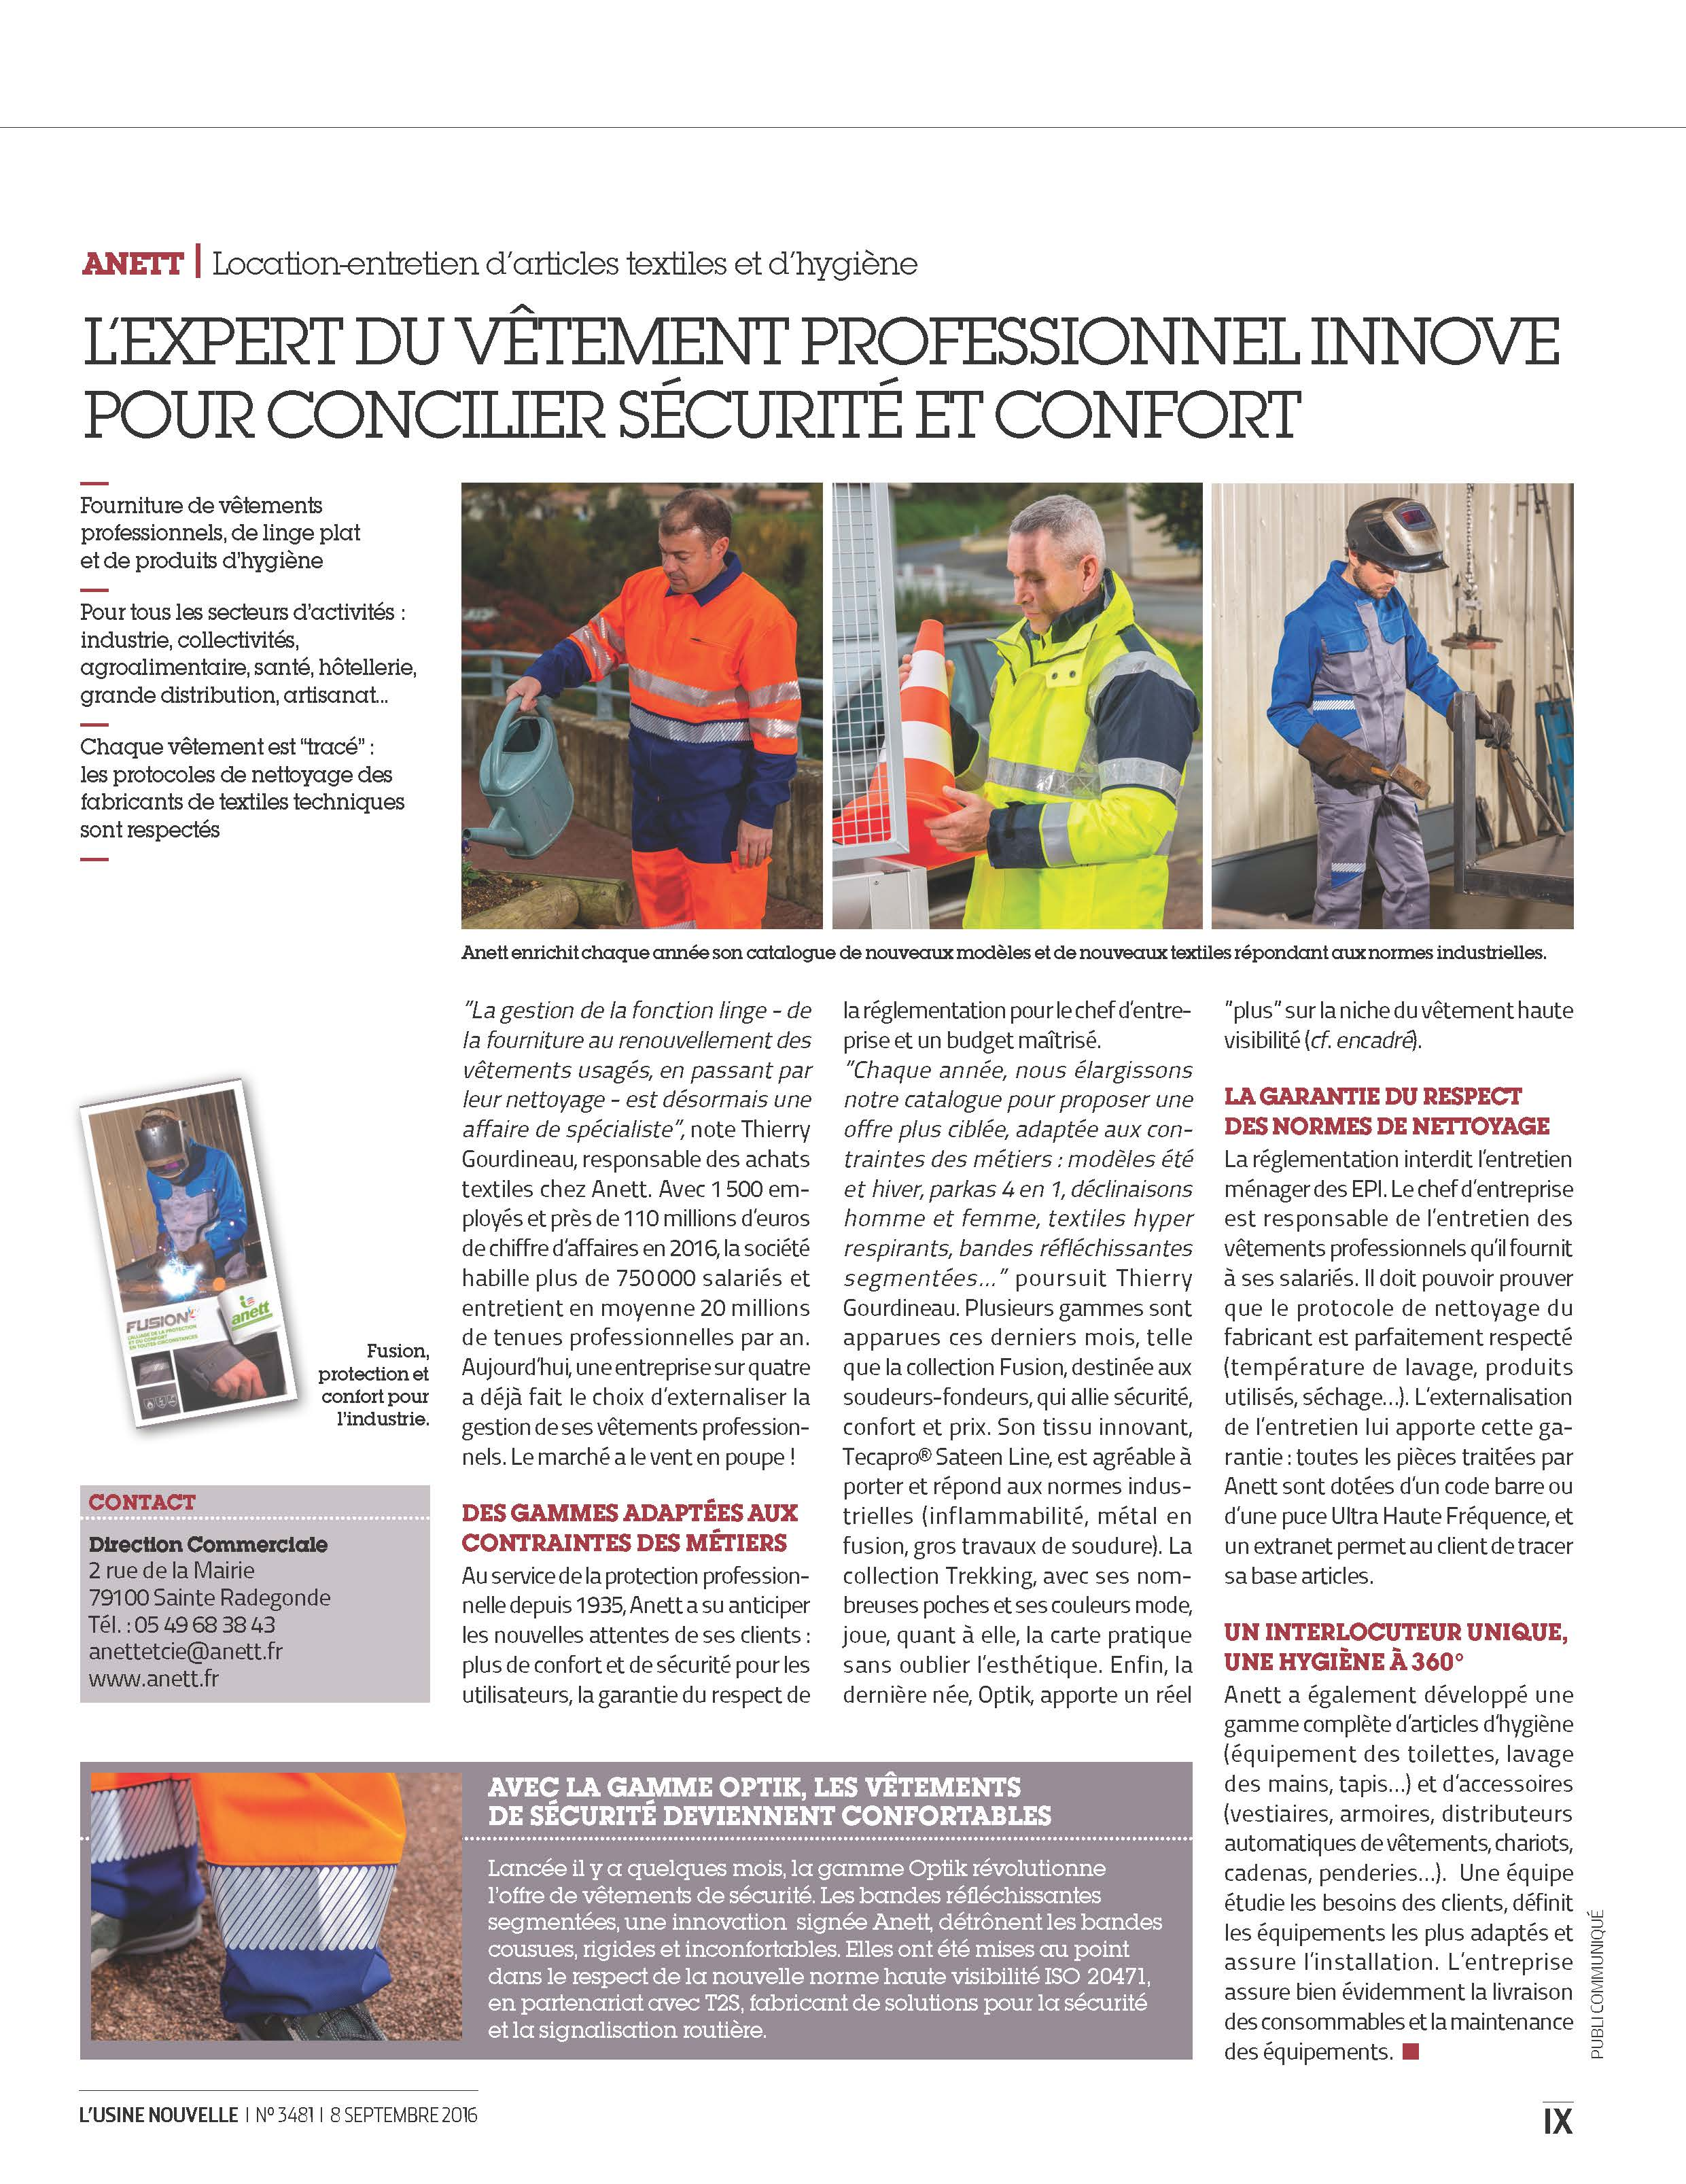 publi-usine-nouvelle-prevention-securite-anett0916